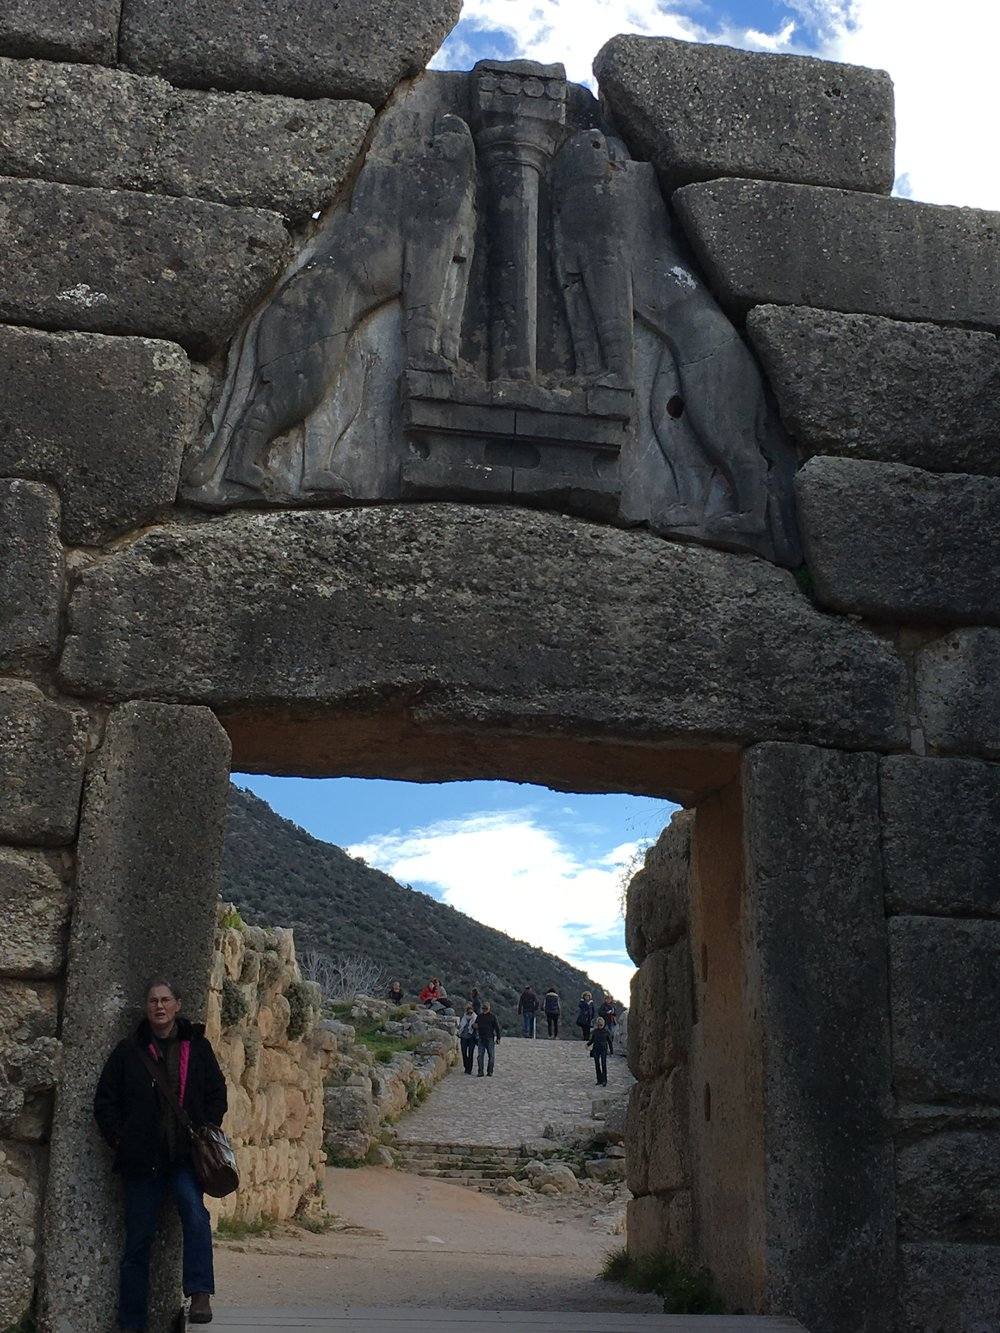 Laura at the Lion Gate—the main entrance of the Bronze Age citadel of Mycenae.